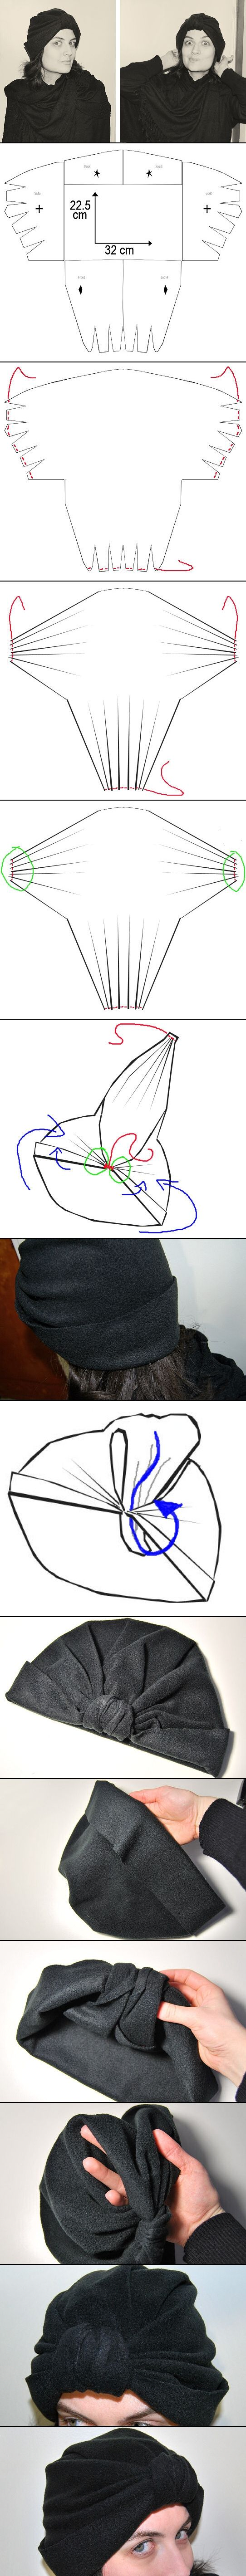 http://ragstocouture.com/turban-hat-diy-printable-pattern/ | Hazlo ...